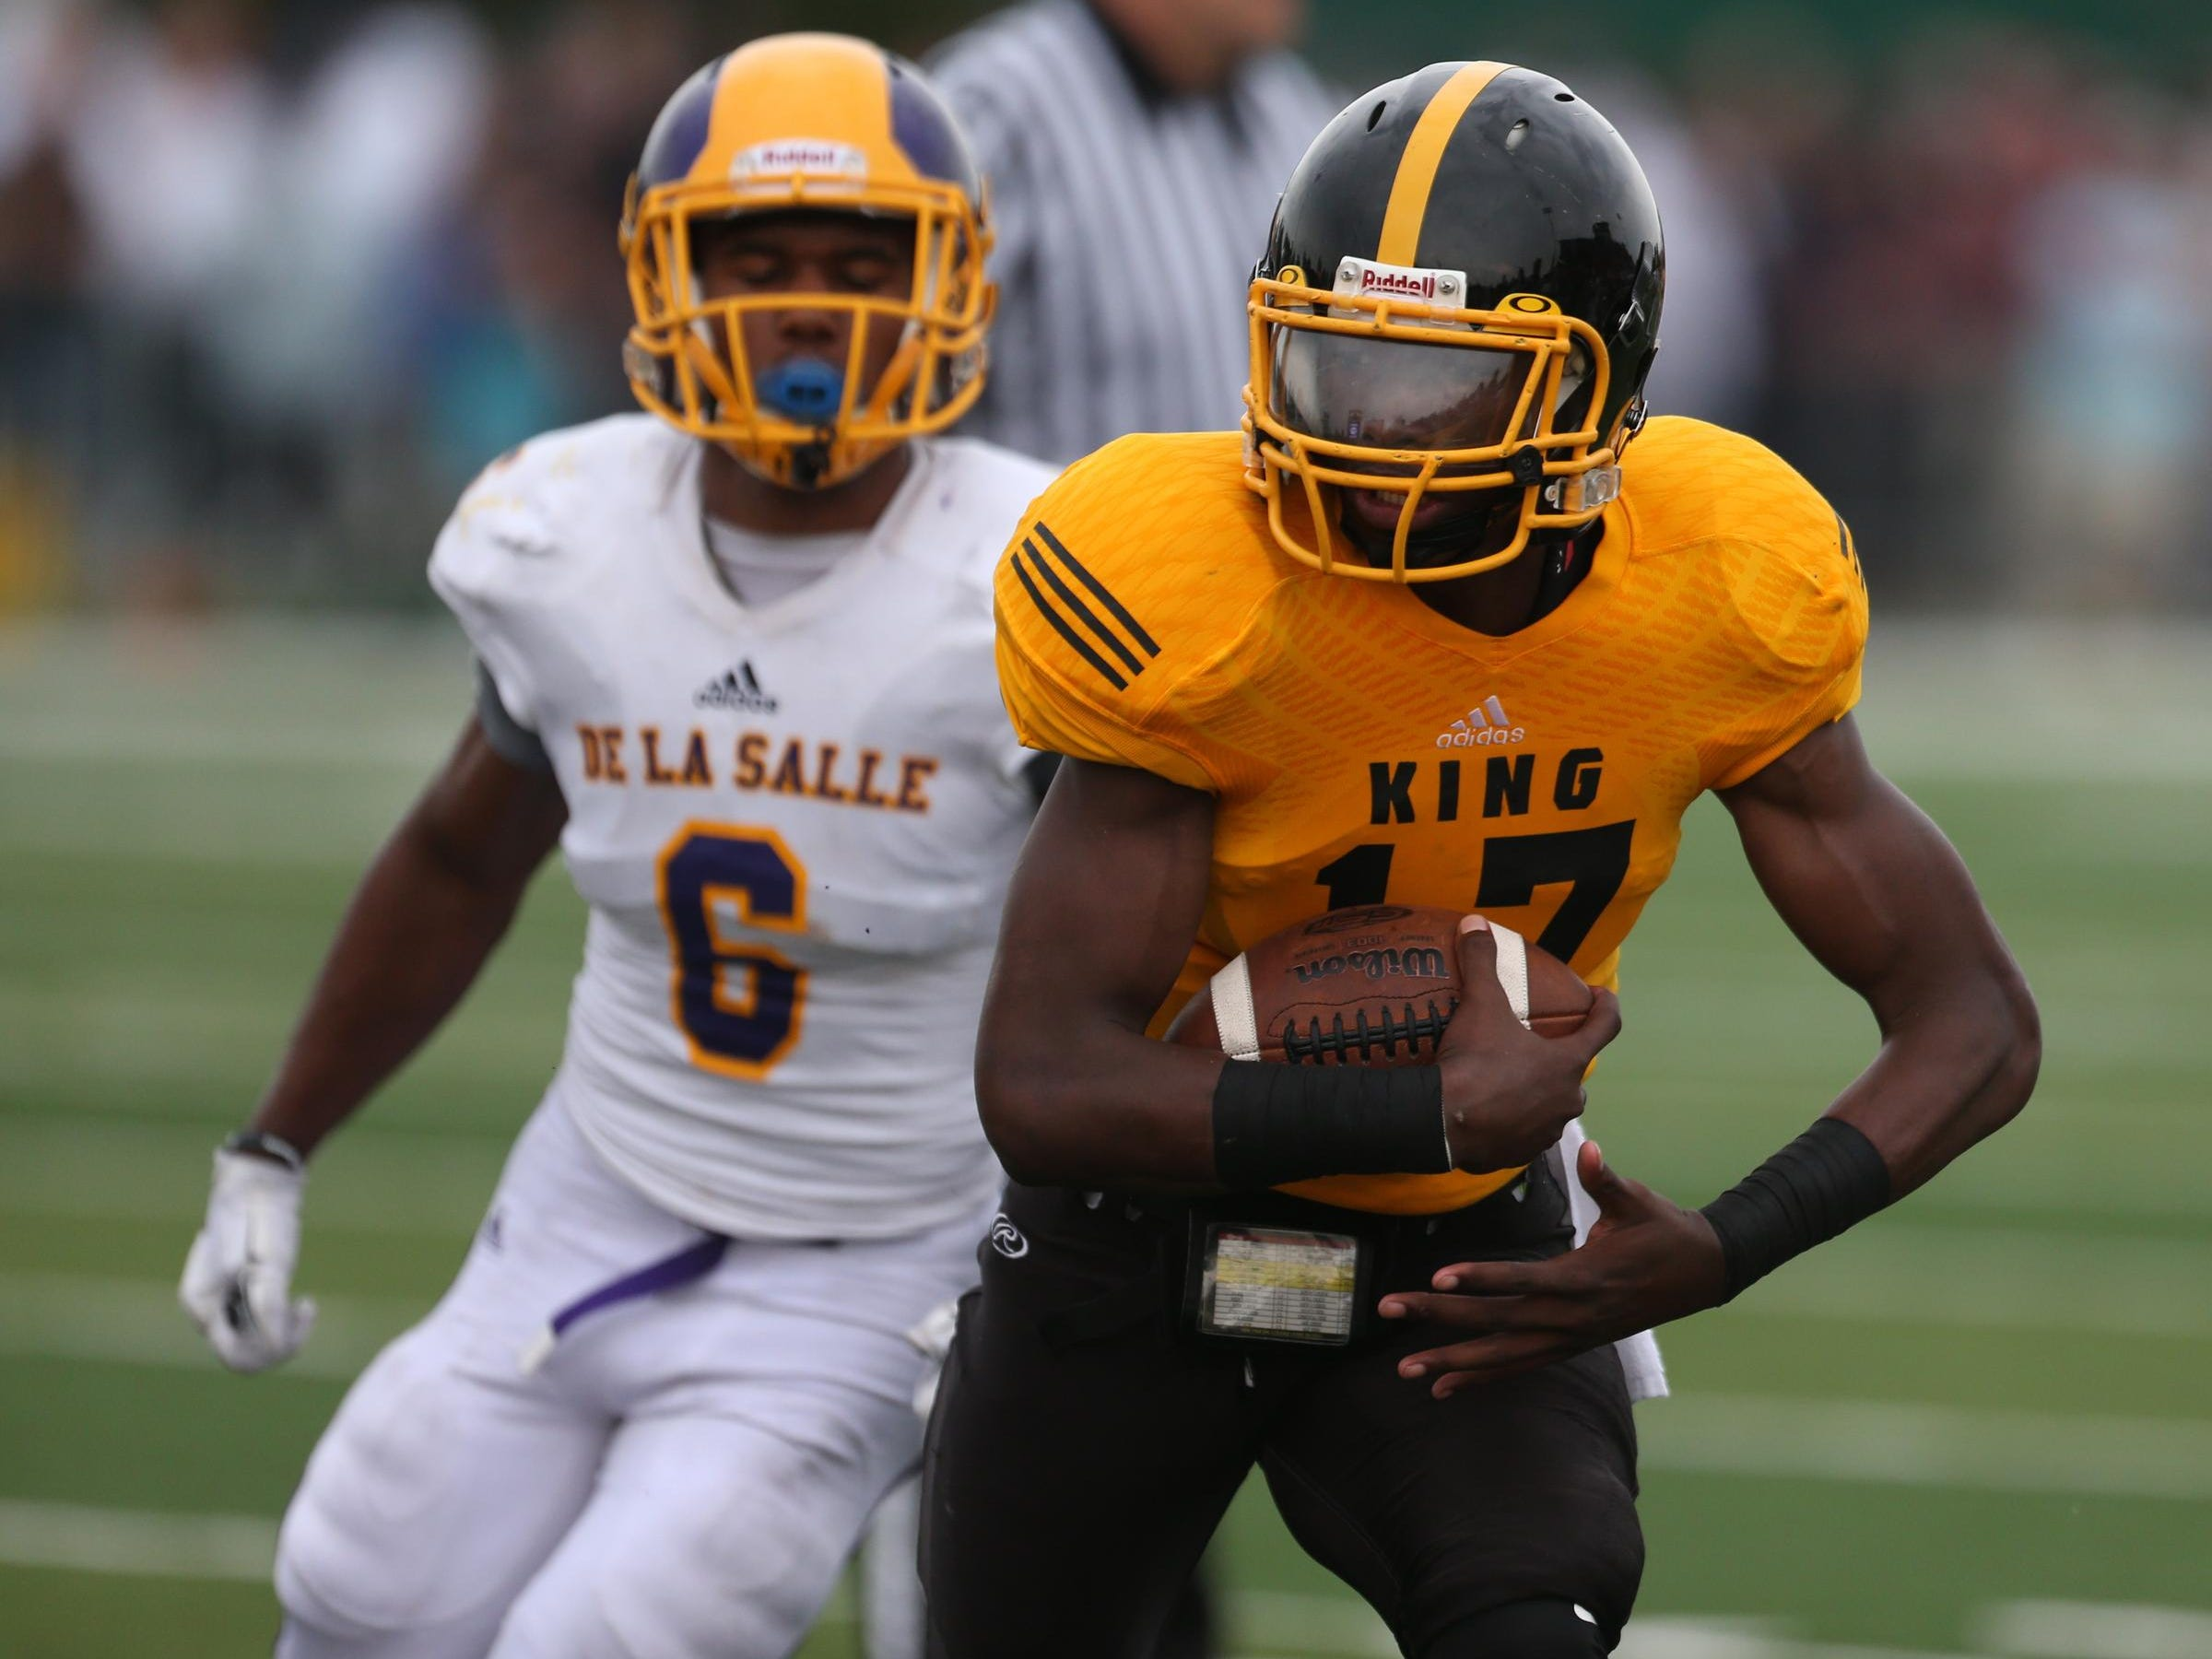 Detroit Martin Luther King high schools Martinez Adams Calloway runs by Warren De La Salle high schools Kevin Lee for a touchdown during second half action of the Prep Kickoff Classic on Saturday, August 29, 2015 at Wayne States Tom Adams Field in Detroit Michigan.